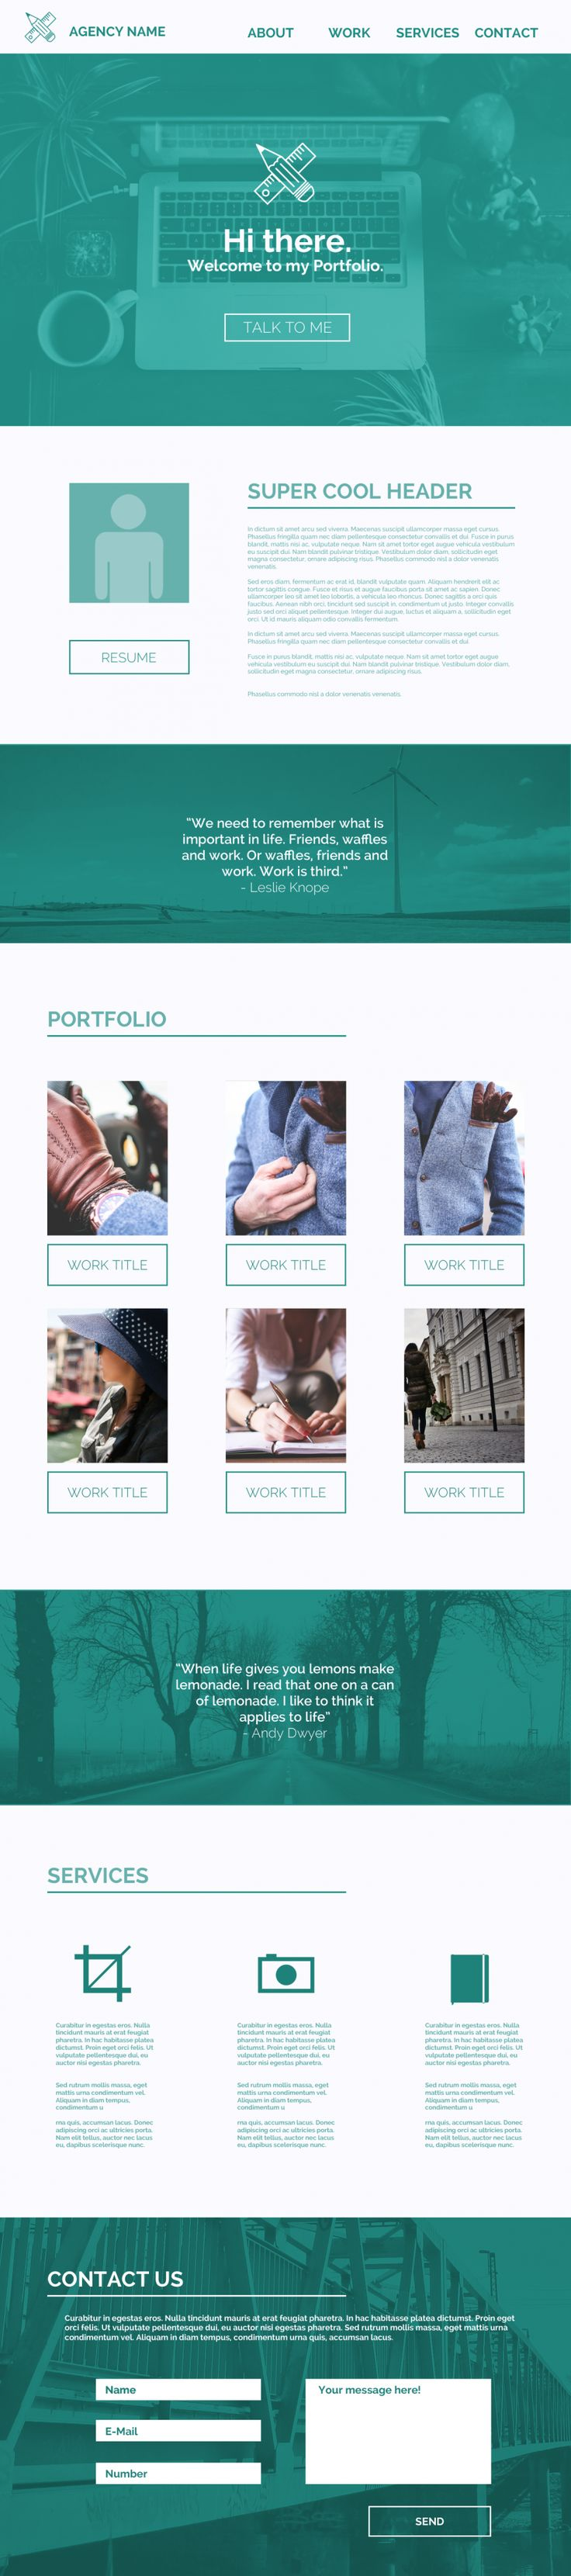 best images about resume cv and interview tips one page website template psd